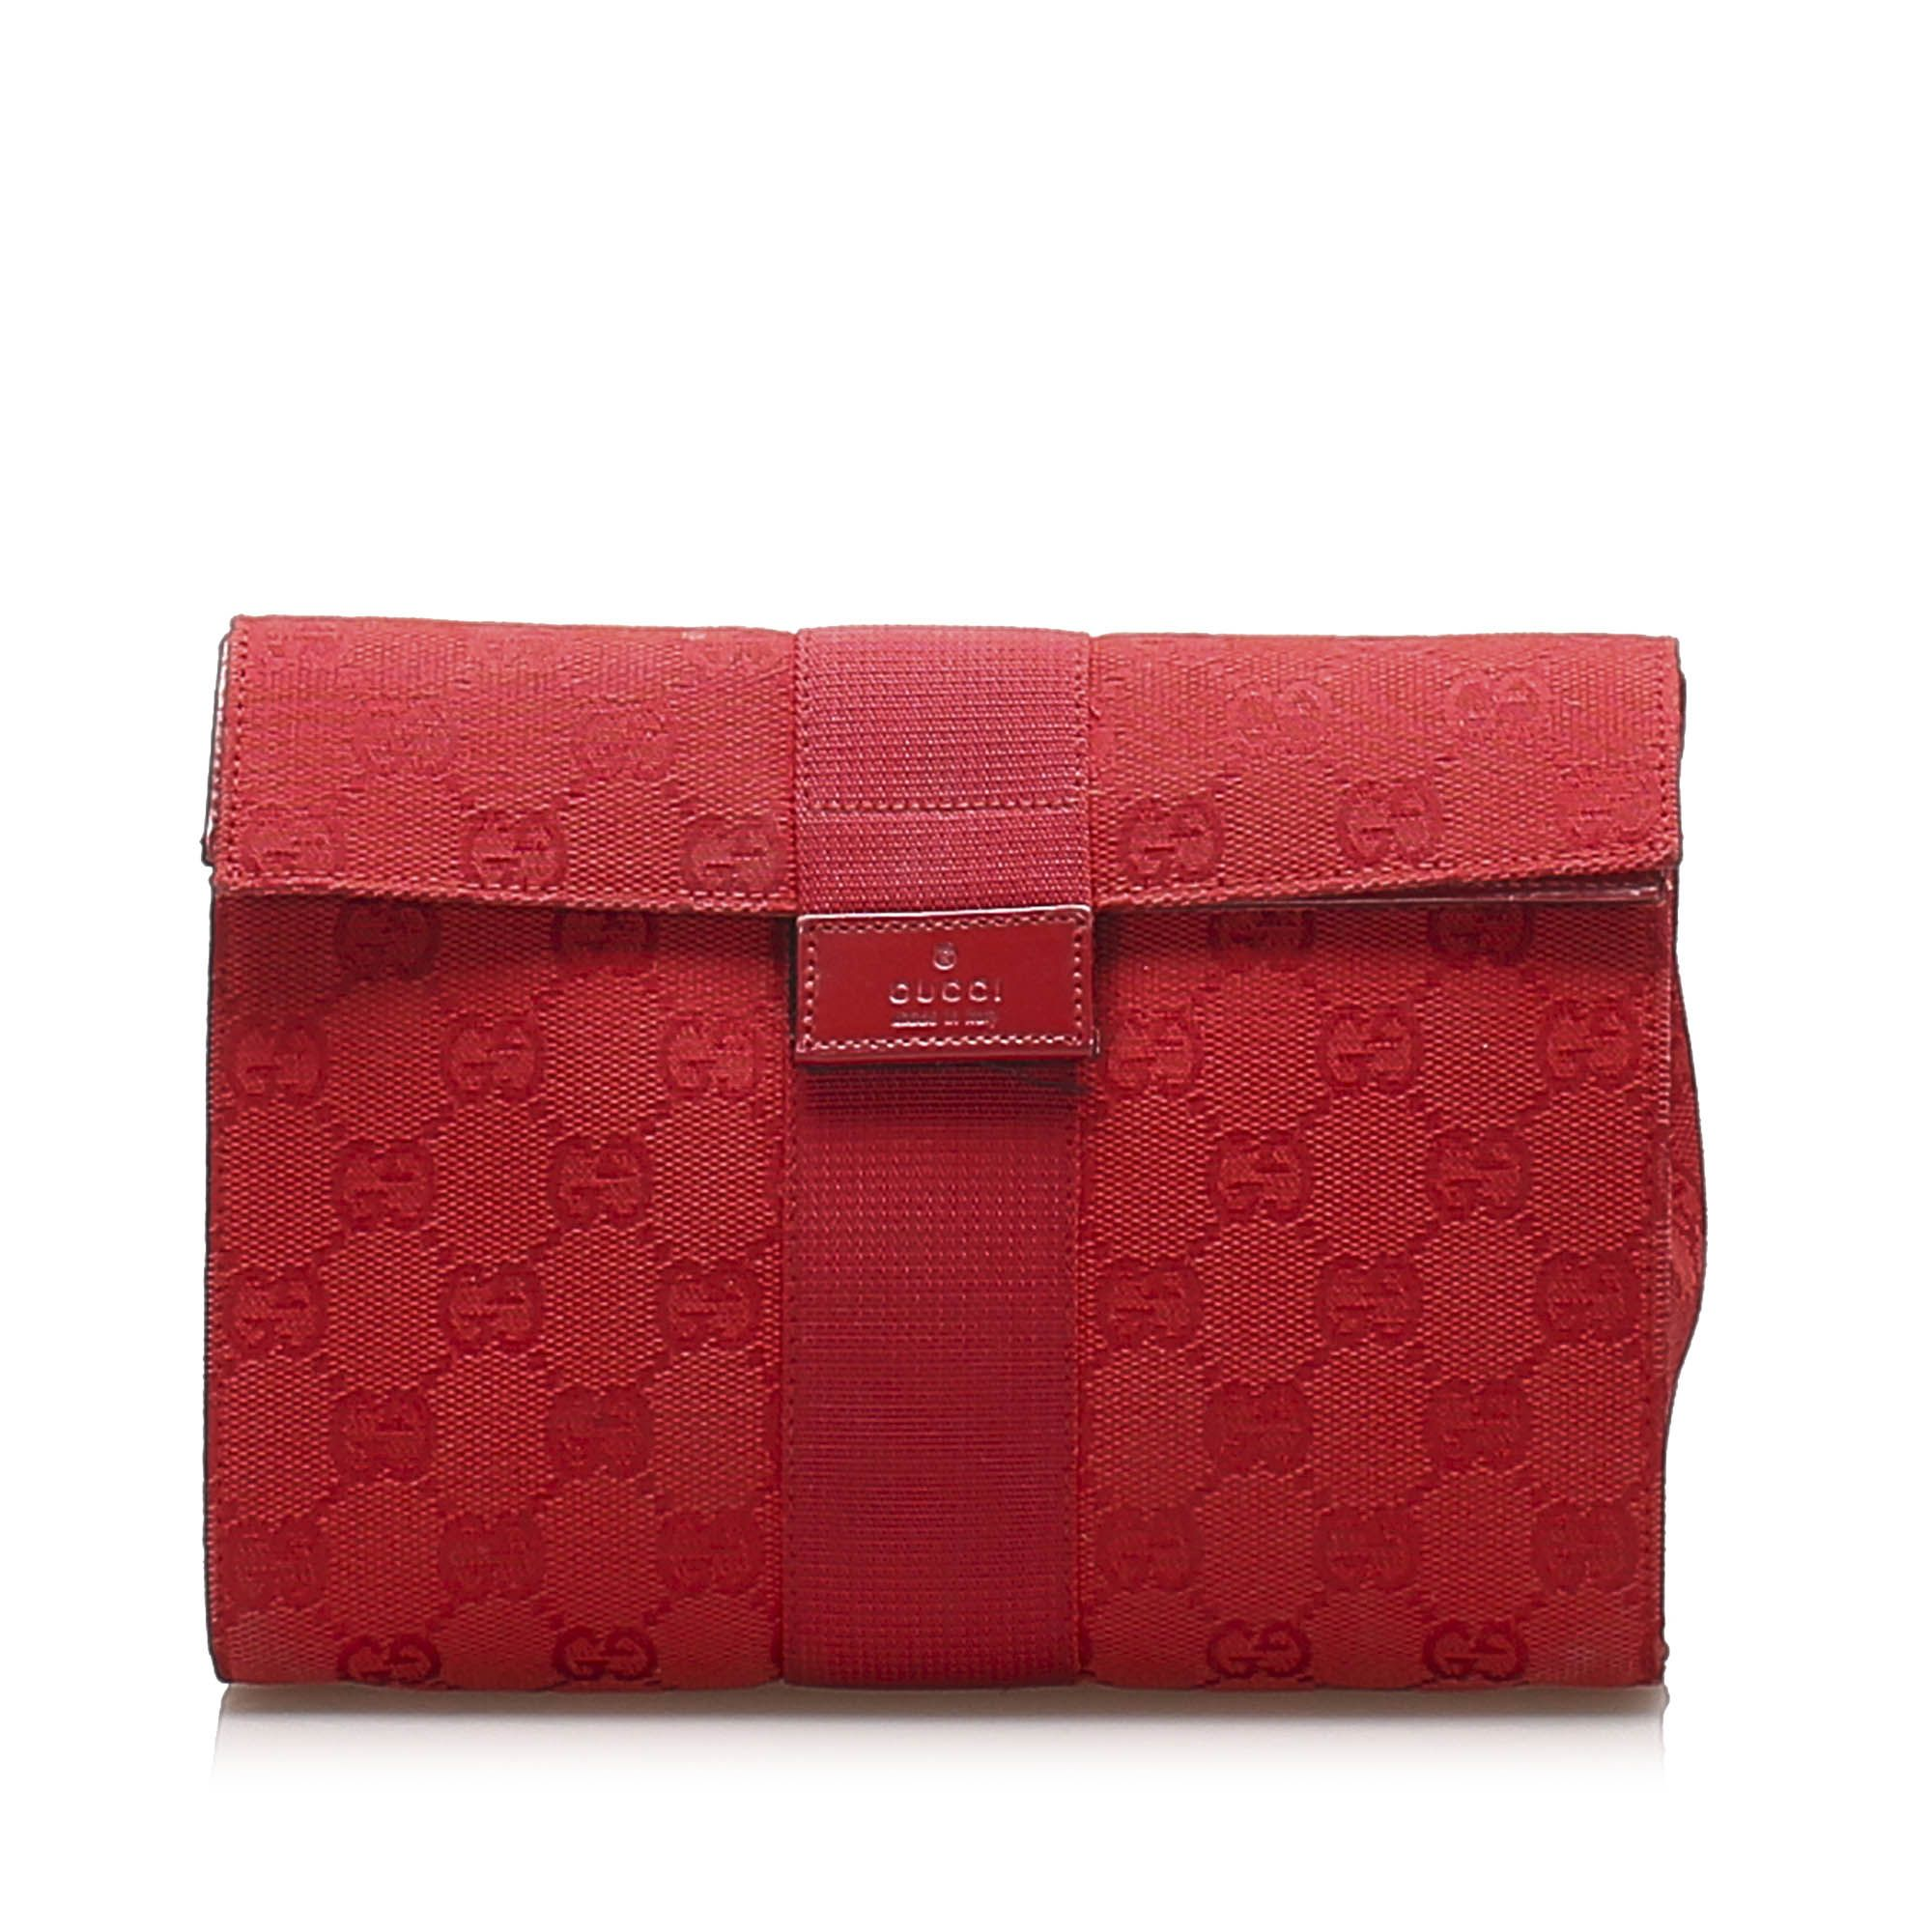 Vintage Gucci GG Canvas Clutch Bag Red